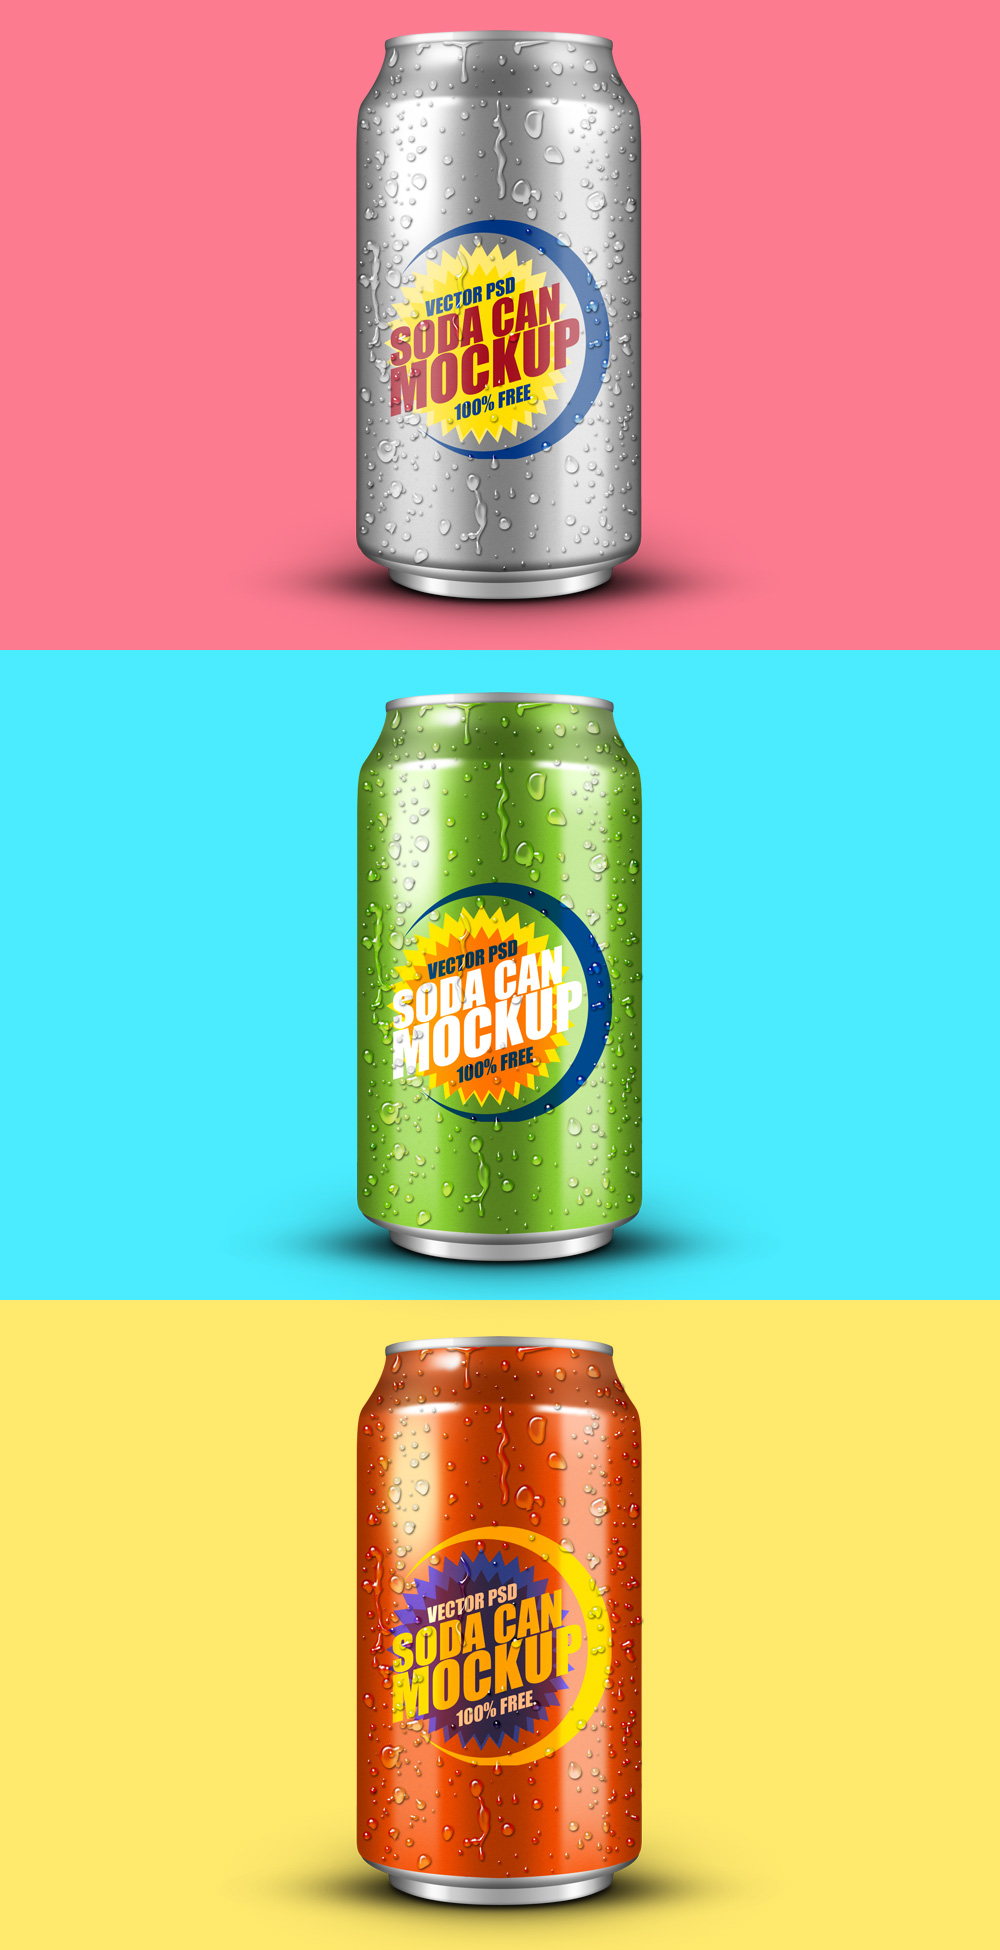 http://www.graphicsfuel.com/wp-content/uploads/2015/03/chilled-soda-can-psd-mockup.jpg